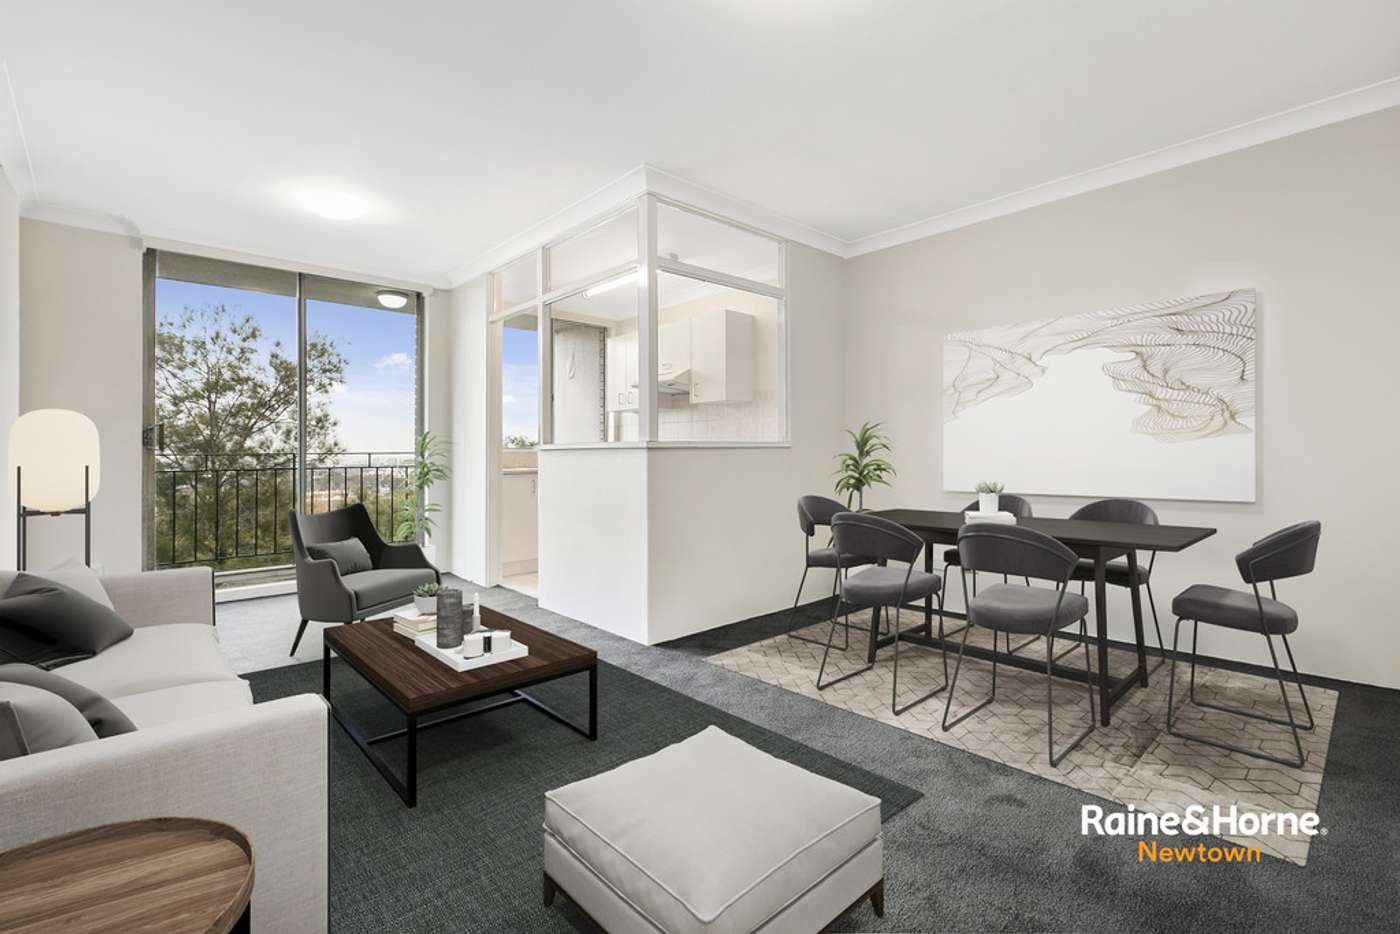 Main view of Homely apartment listing, 47/19-23 Queen Street, Newtown NSW 2042